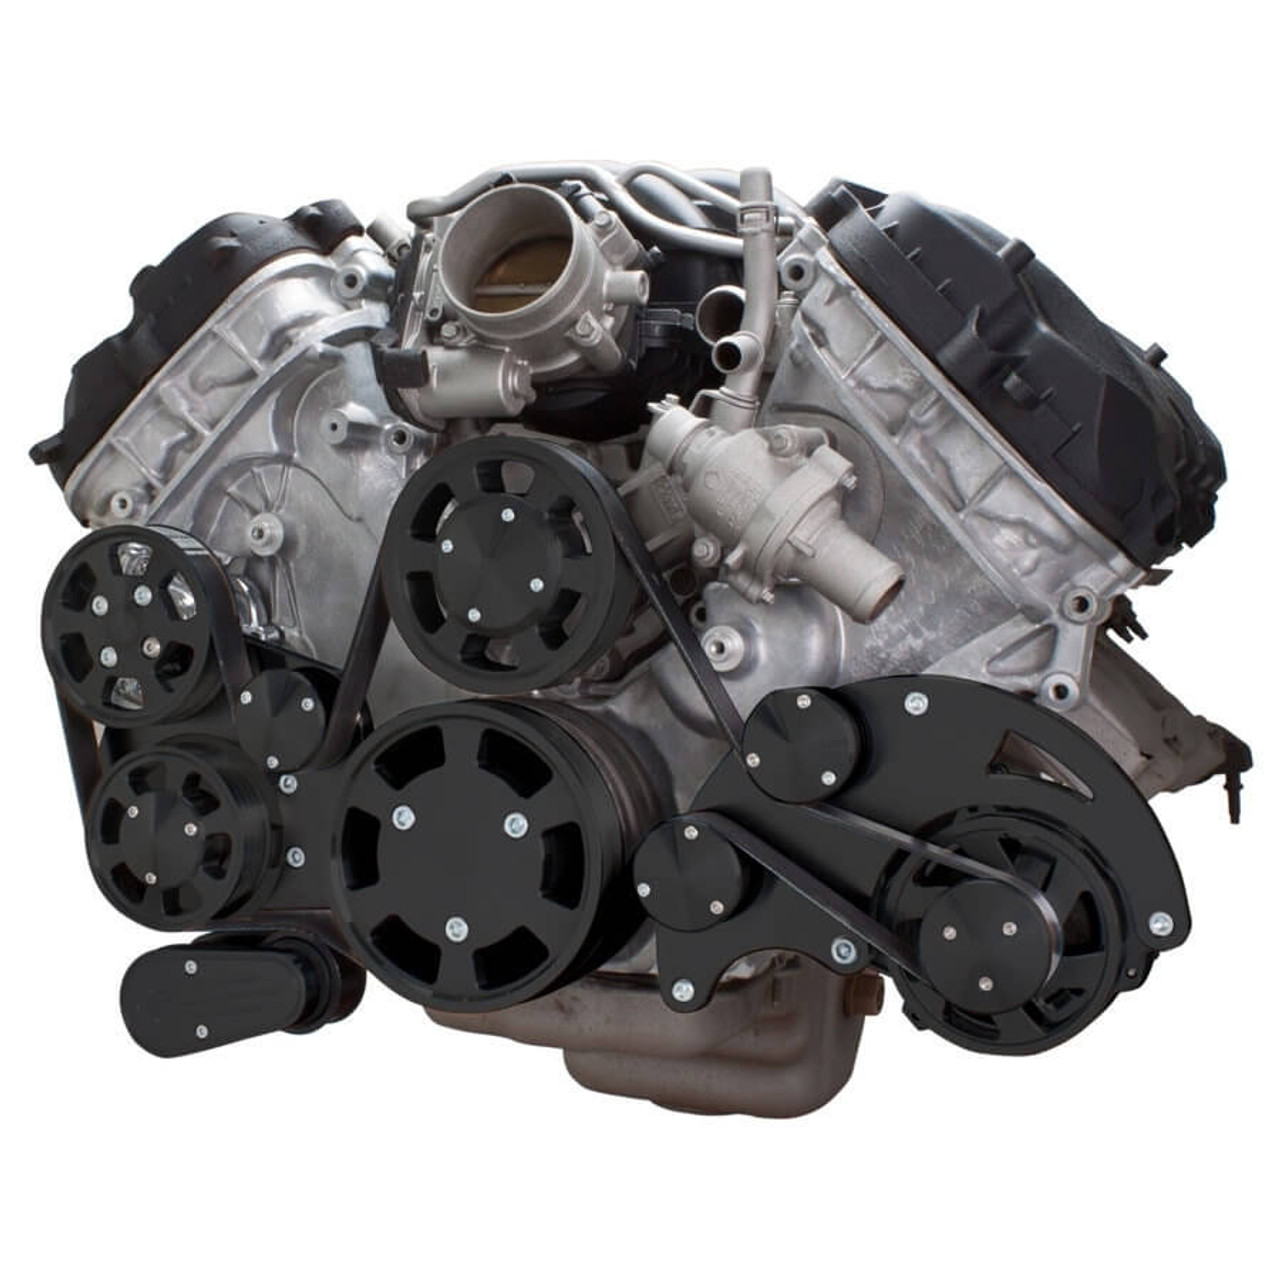 hight resolution of stealth black serpentine system for ford coyote 5 0 alternator power steering